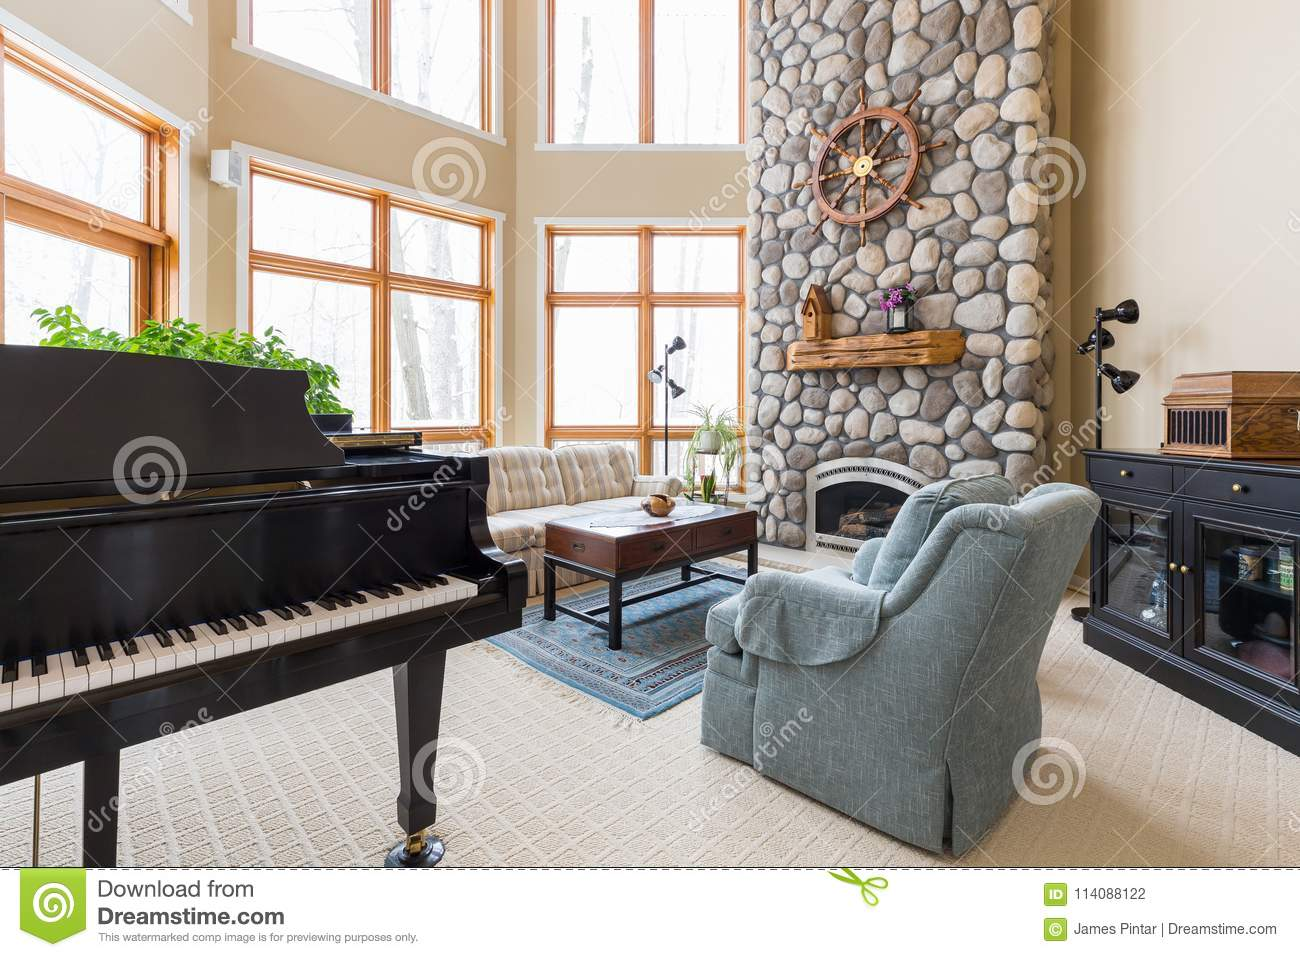 contemporary living rooms with fireplaces modern room decoration ideas stock photo image of stone 114088122 upscale inviting scene piano floor to ceiling fireplace and decor